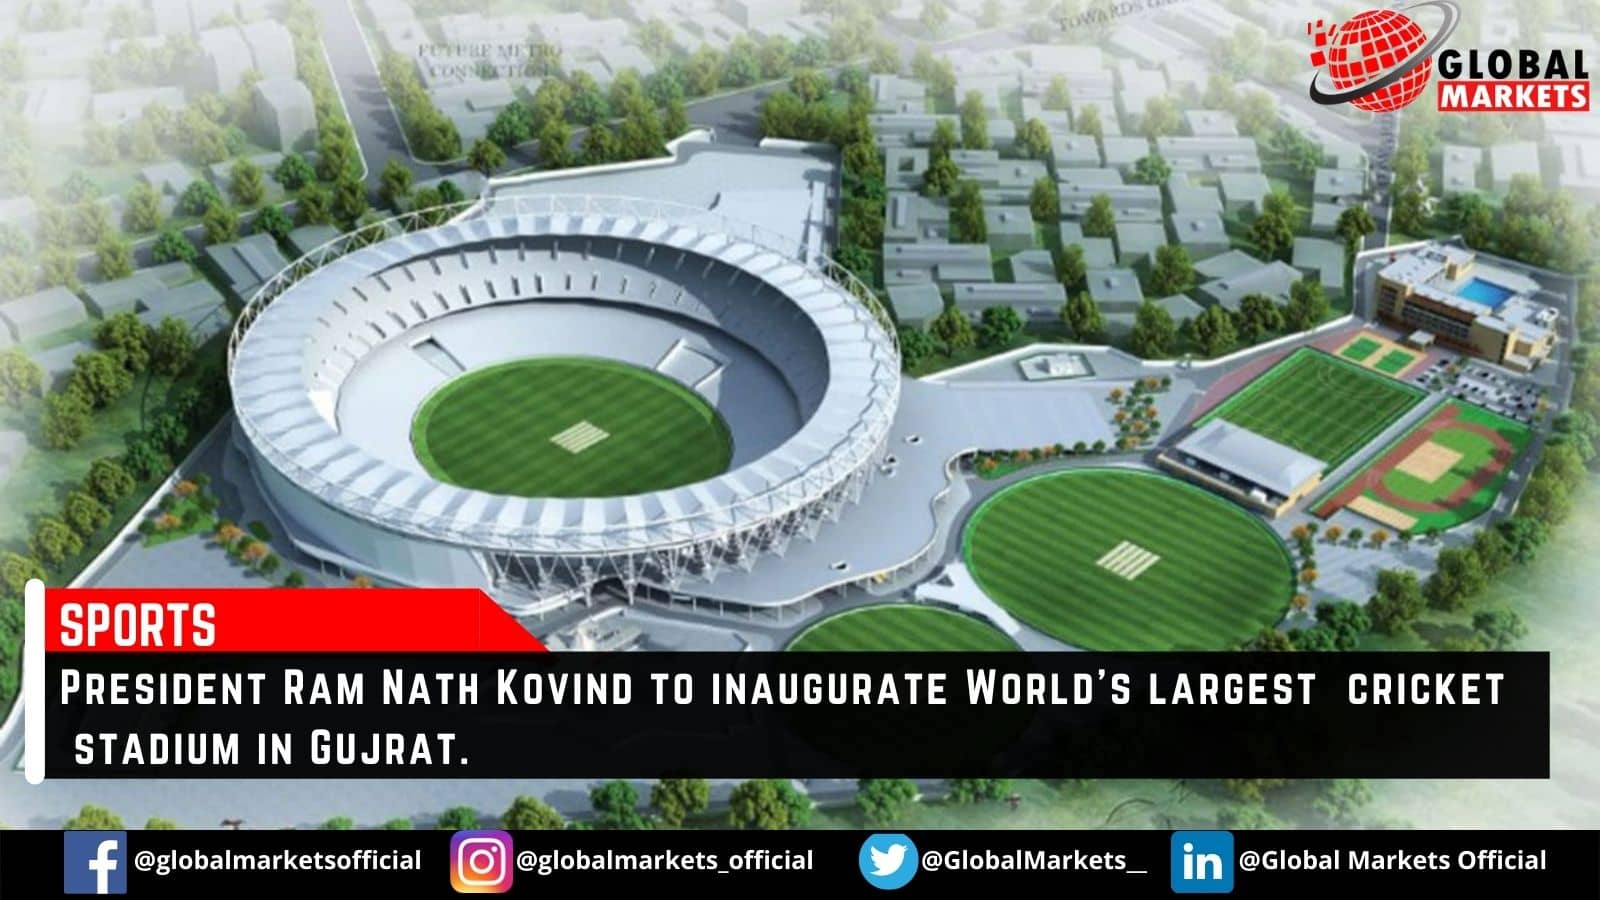 World's largest cricket stadium in Gujrat to be inaugurated today by President Ram Nath Kovind